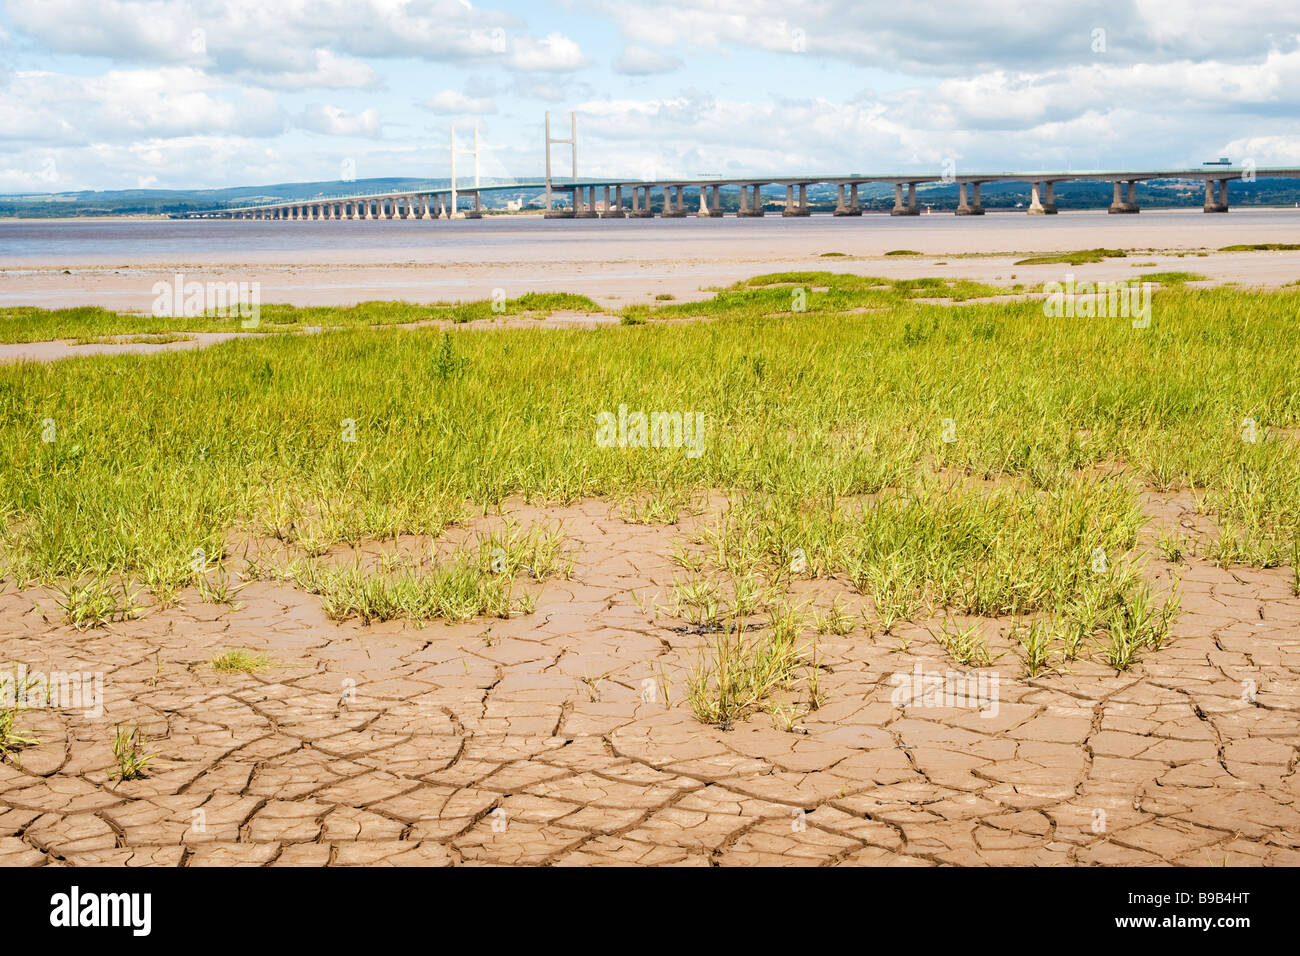 View of the Second Severn Crossing (1996), as seen from Severn Beach near Bristol, England, UK - Stock Image